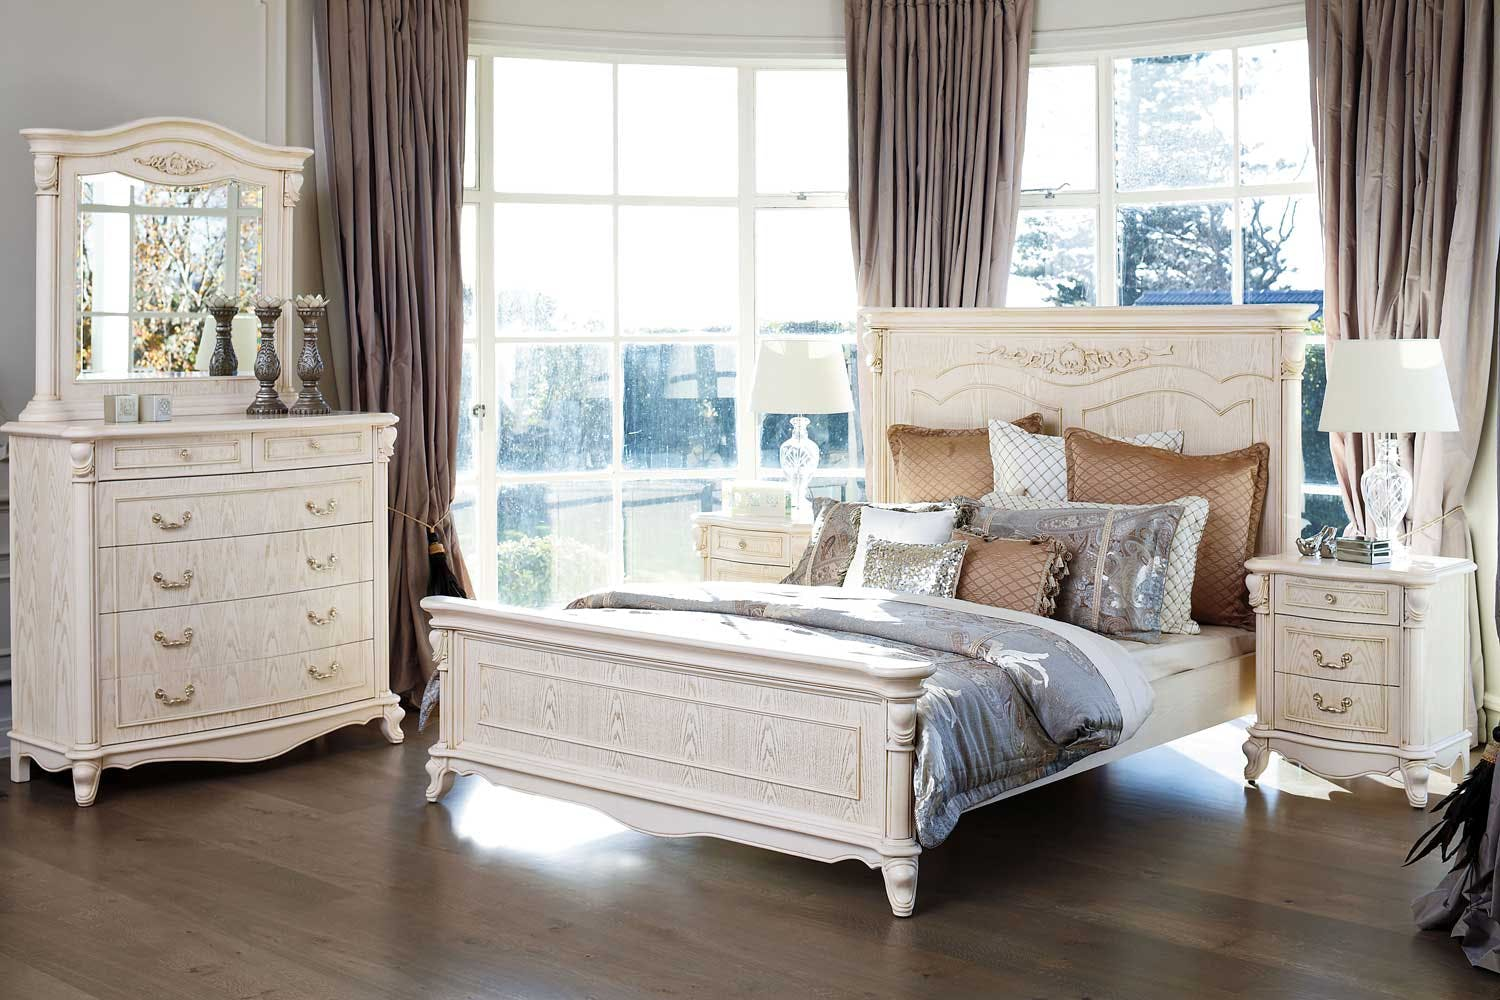 chateau bedroom suite by sorensen furniture harvey norman new zealand. Black Bedroom Furniture Sets. Home Design Ideas